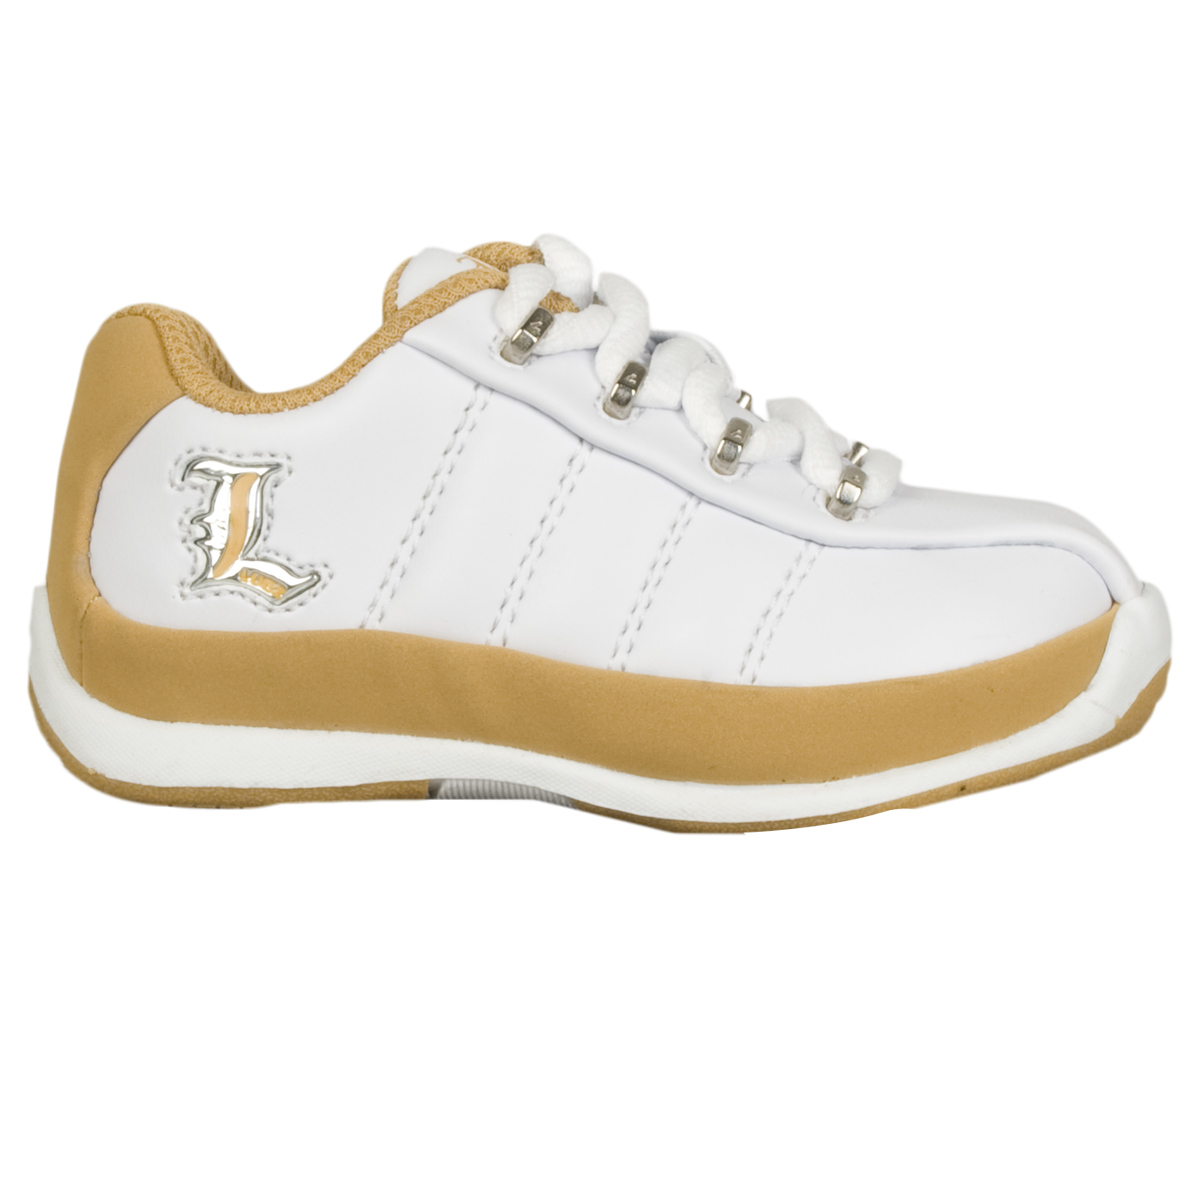 Lugz Tempest II Infants Sneaker White/Wheat